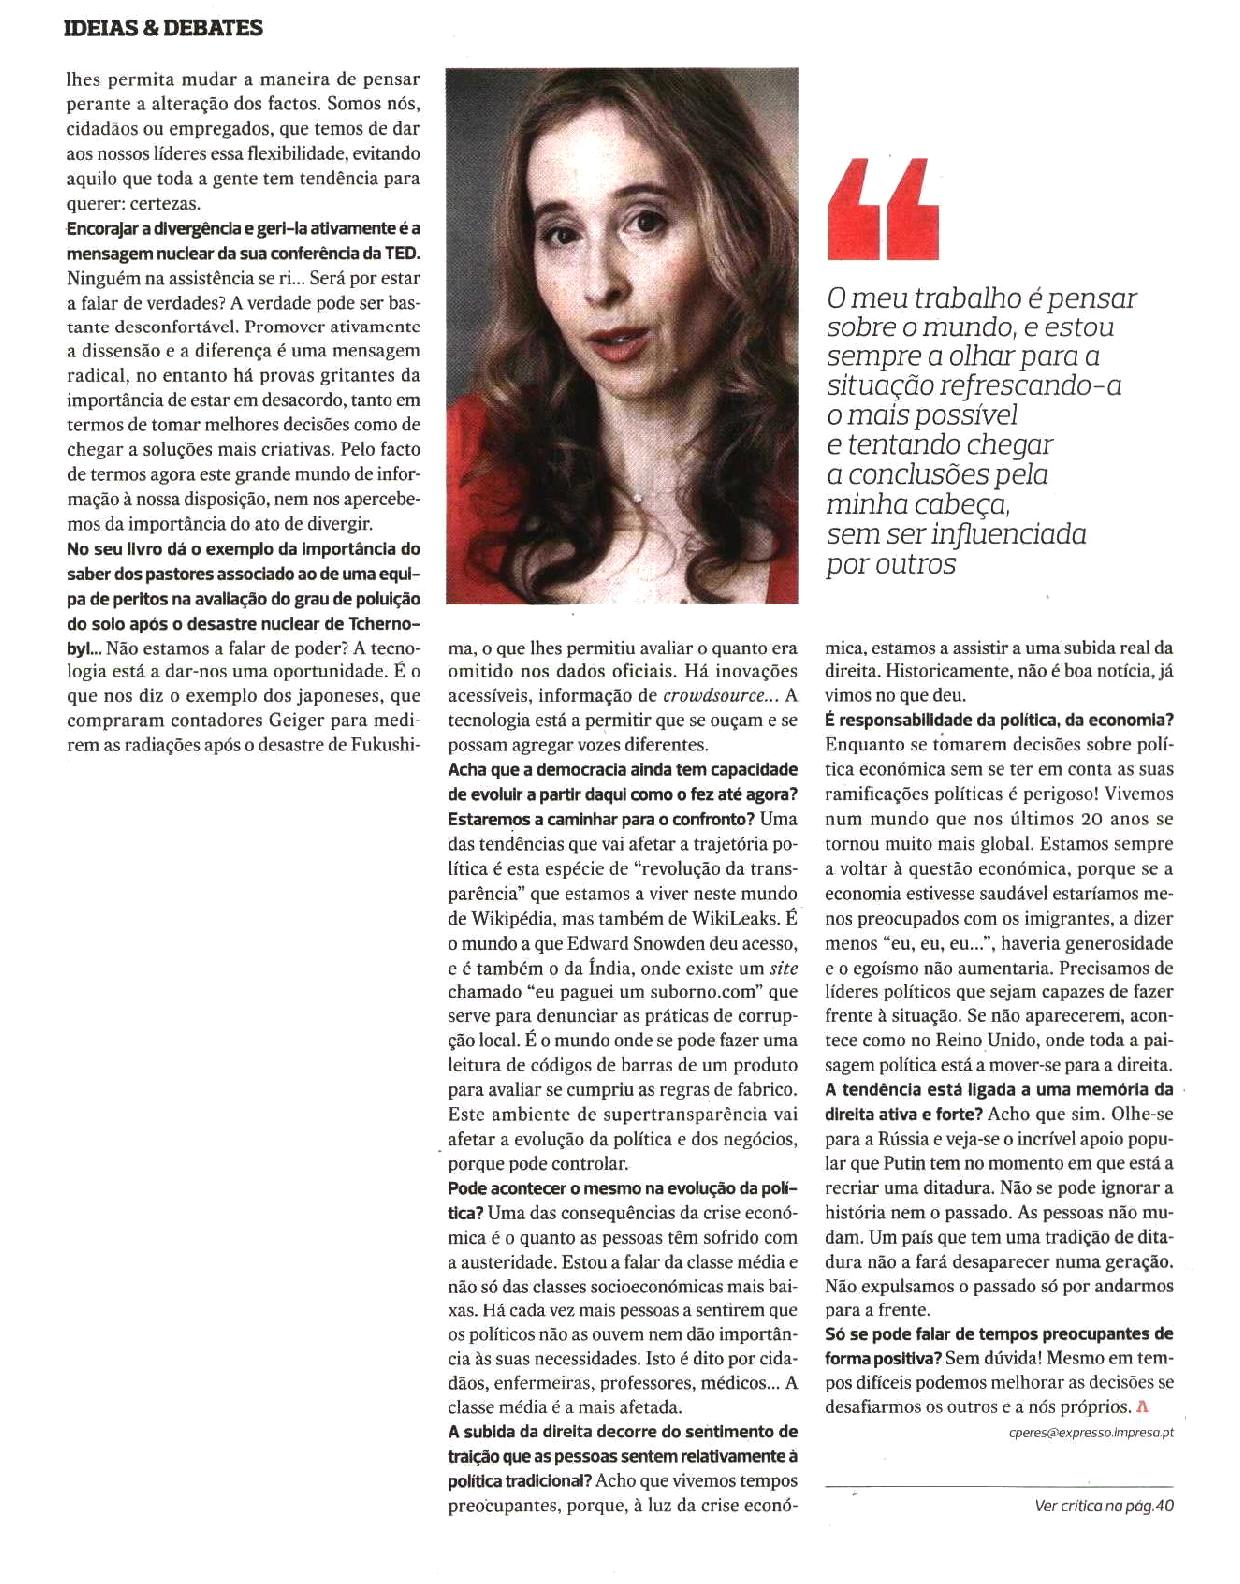 O Tigre e a Serpente_Expresso_Interview_18042014-page-003